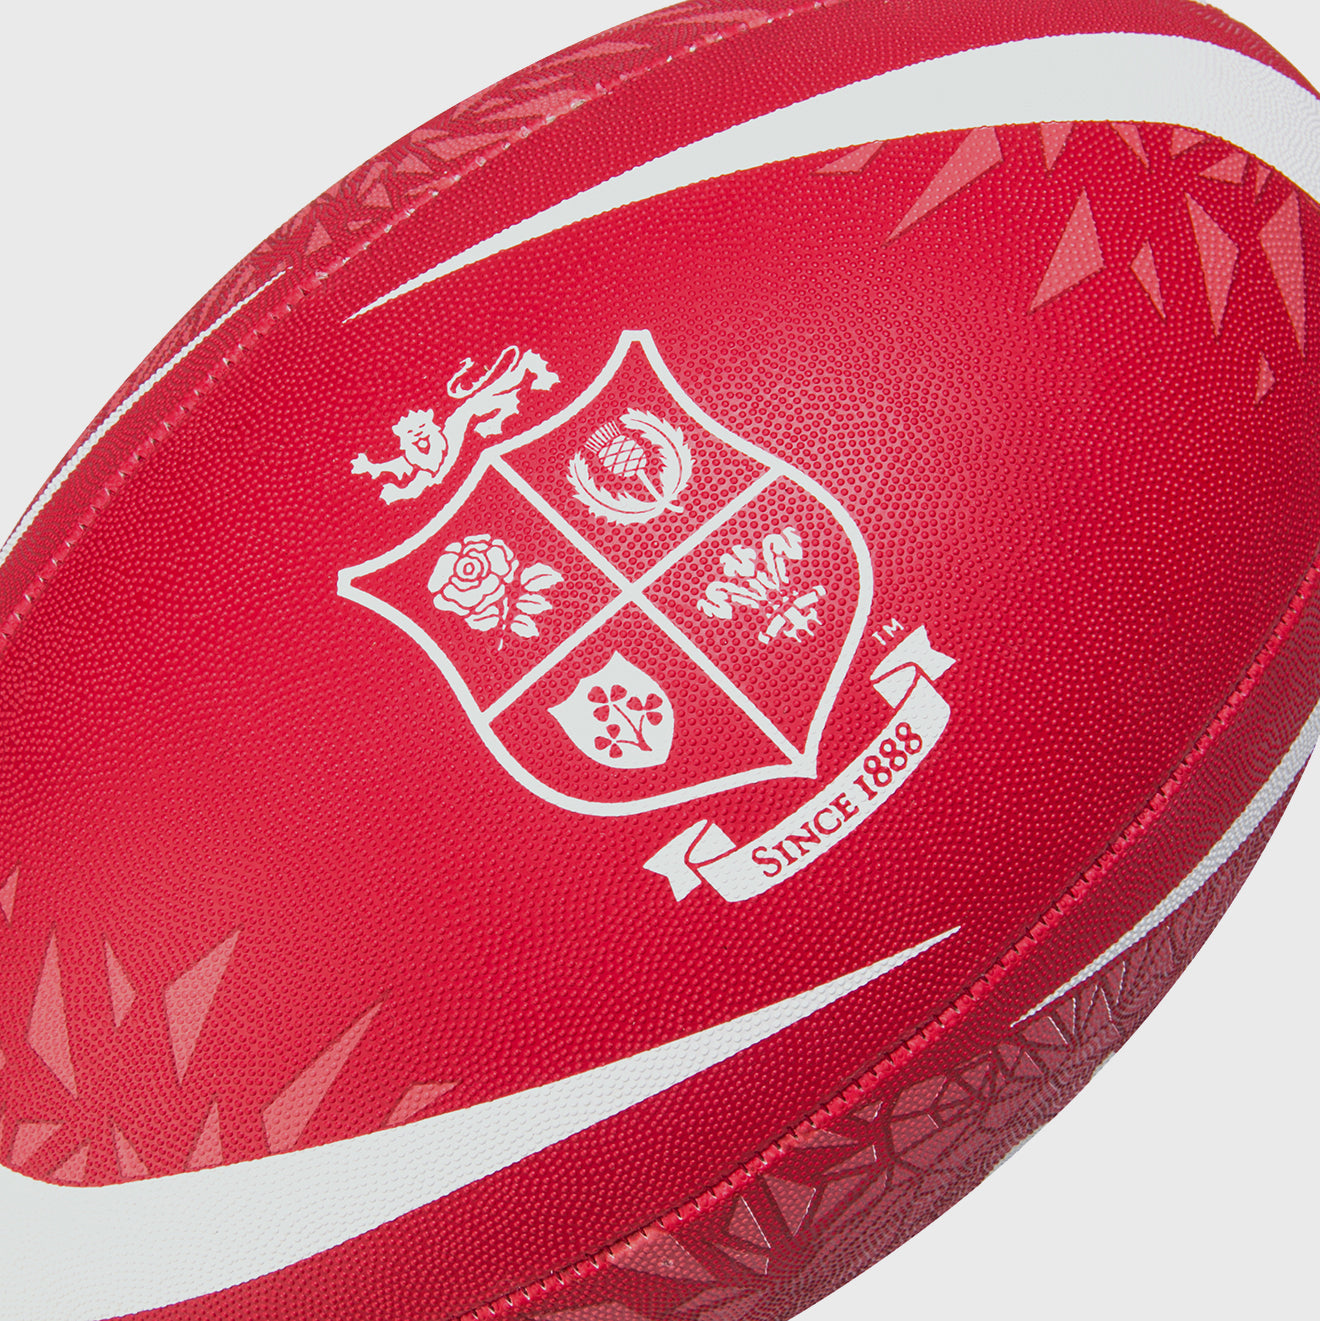 British & Irish Lions SA 2021 Thrillseeker Supporter Rugby Ball Red